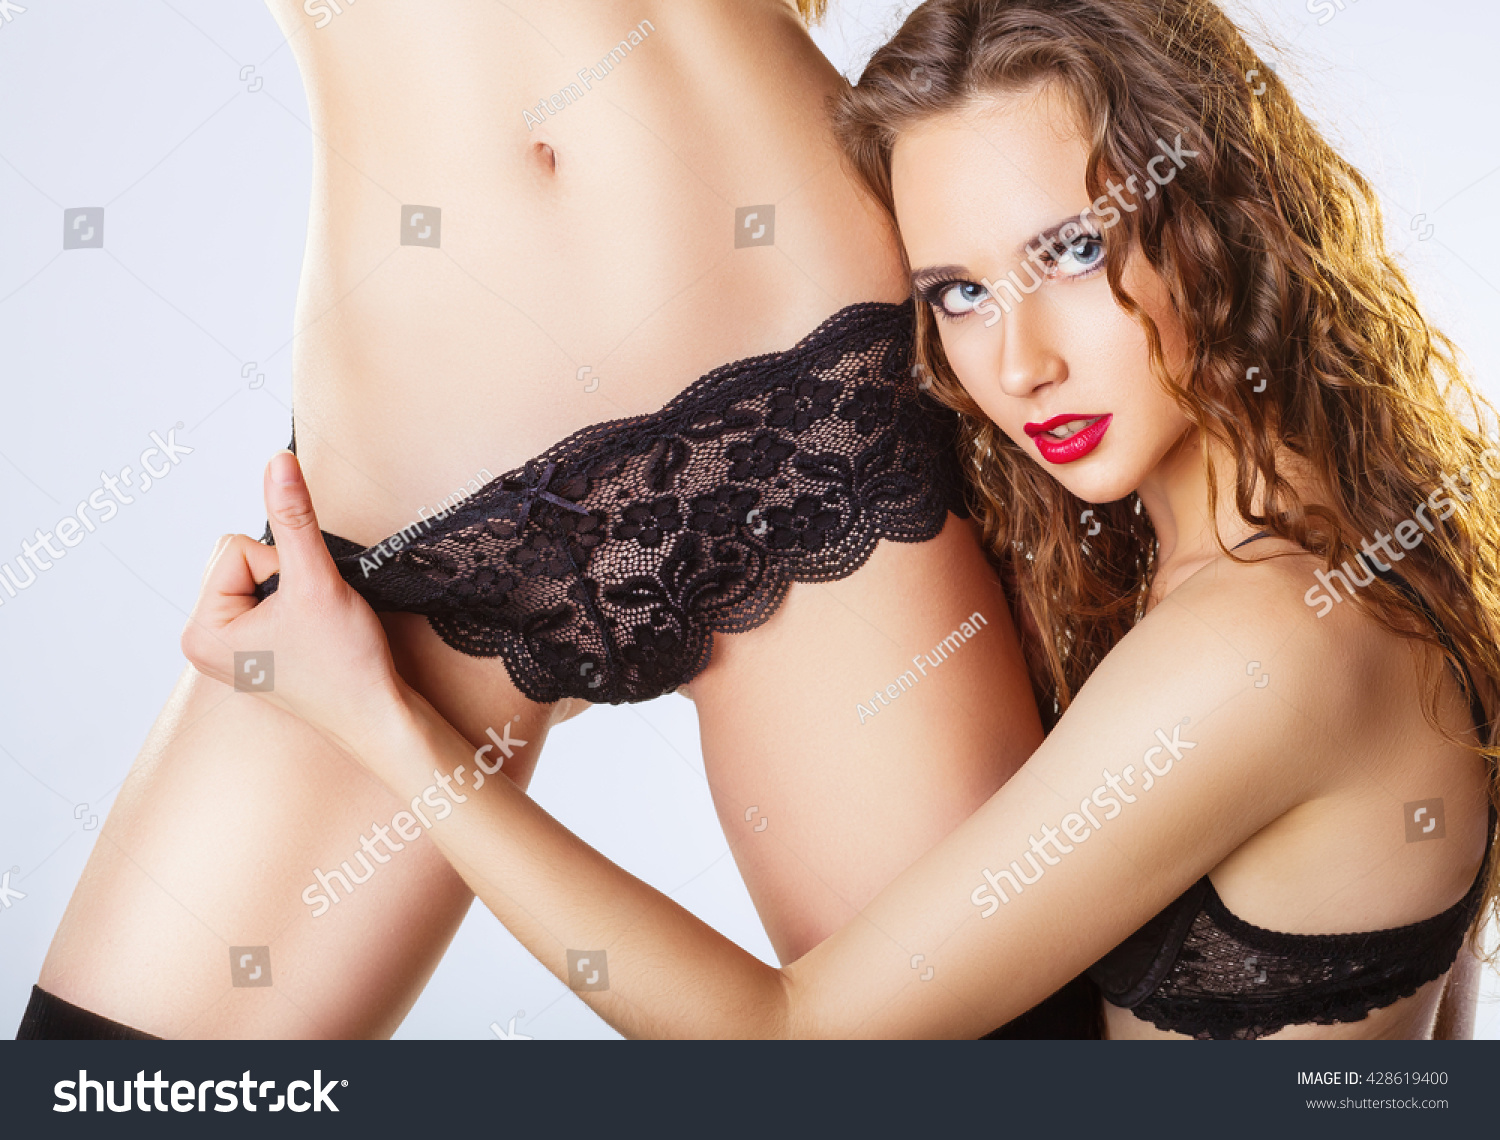 Two Beautiful Lesbian Women In Erotic Foreplay Game On A White Background Sexy Woman Pulling